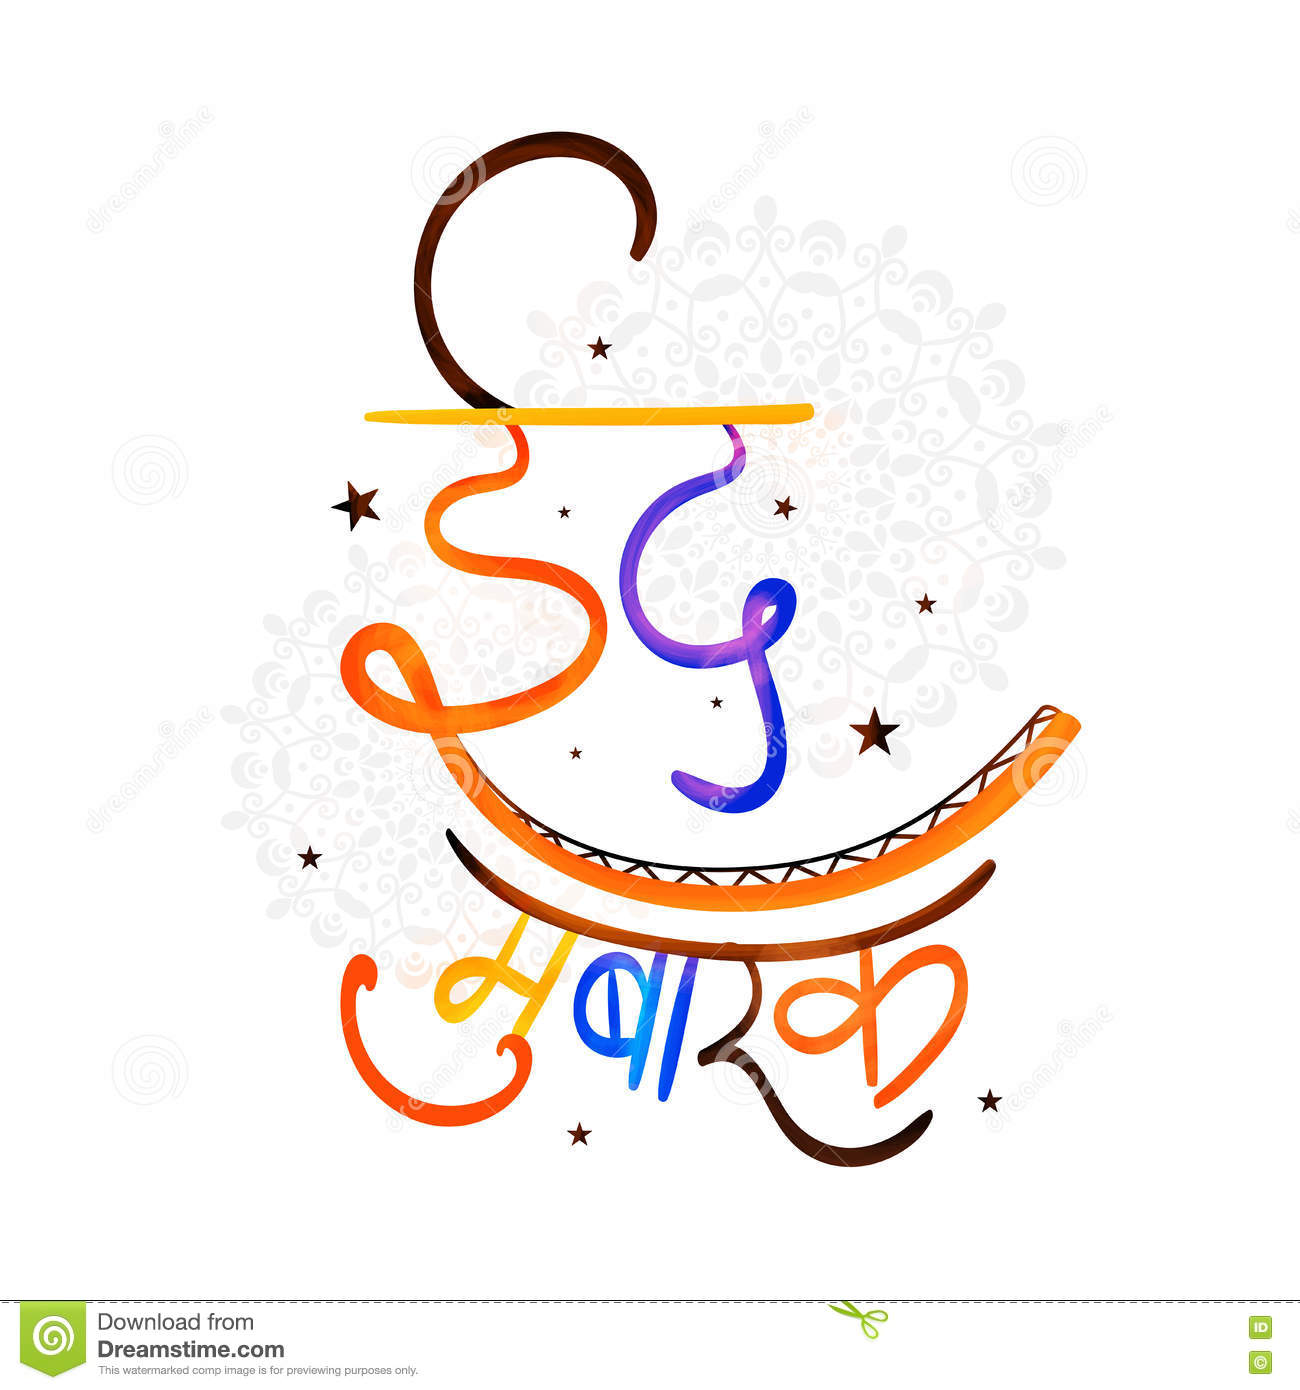 Greeting card with hindi text for eid mubarak stock illustration download greeting card with hindi text for eid mubarak stock illustration illustration of fitra m4hsunfo